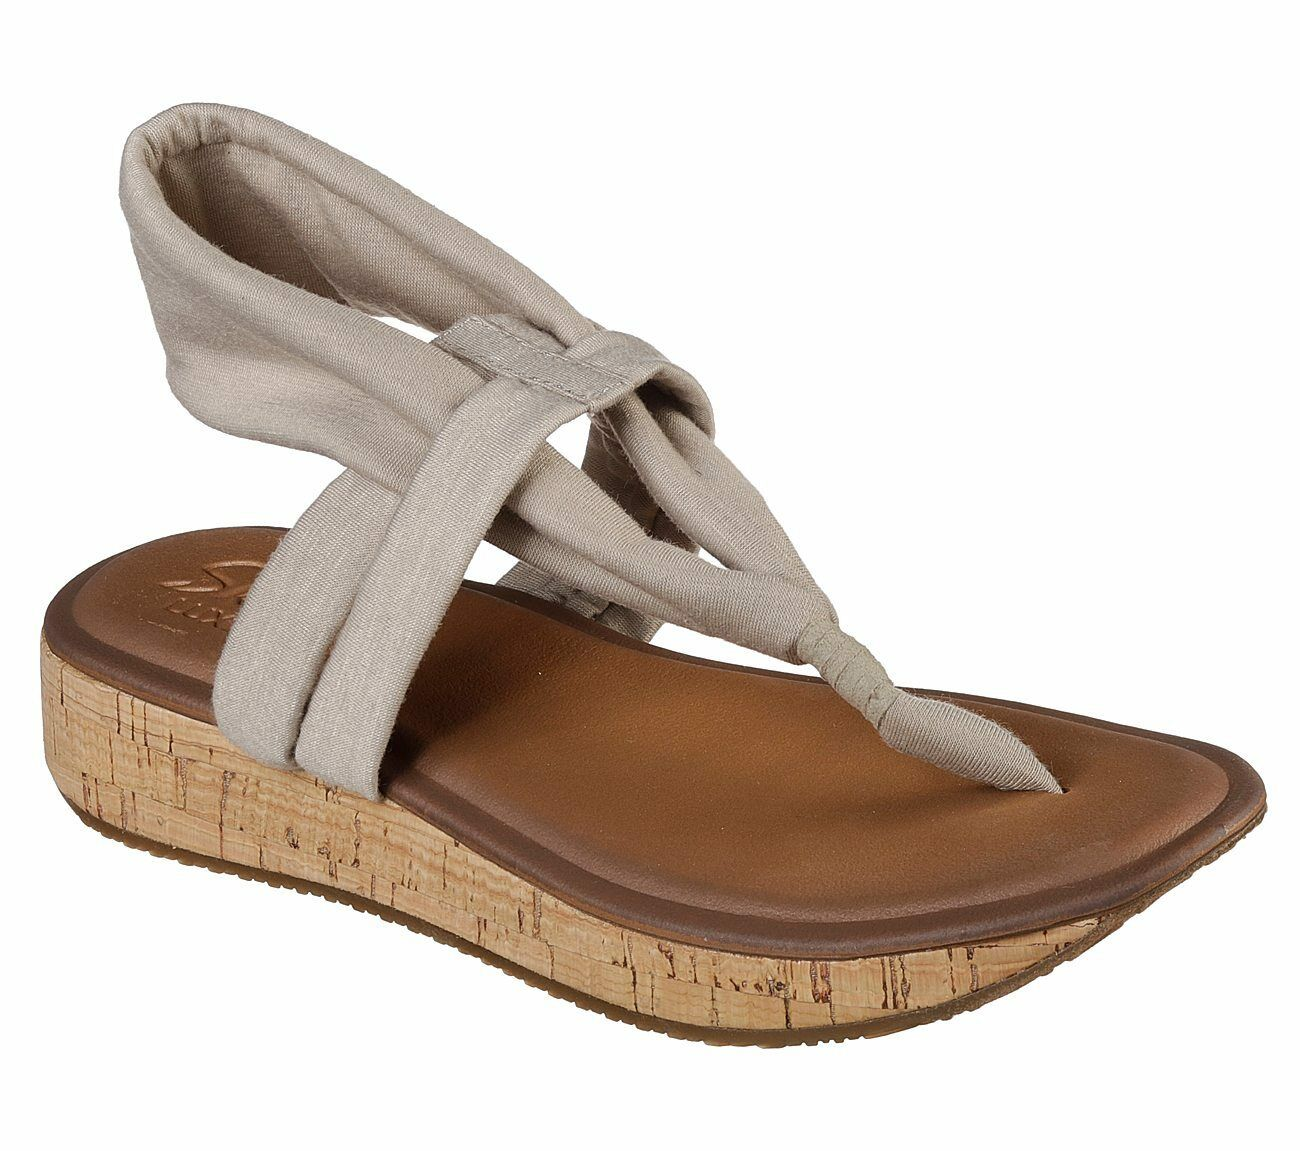 NEW SKECHERS Women's FOOTSTEPS - (Taupe) JAM BAND Sandal (Taupe) - 5e56e0